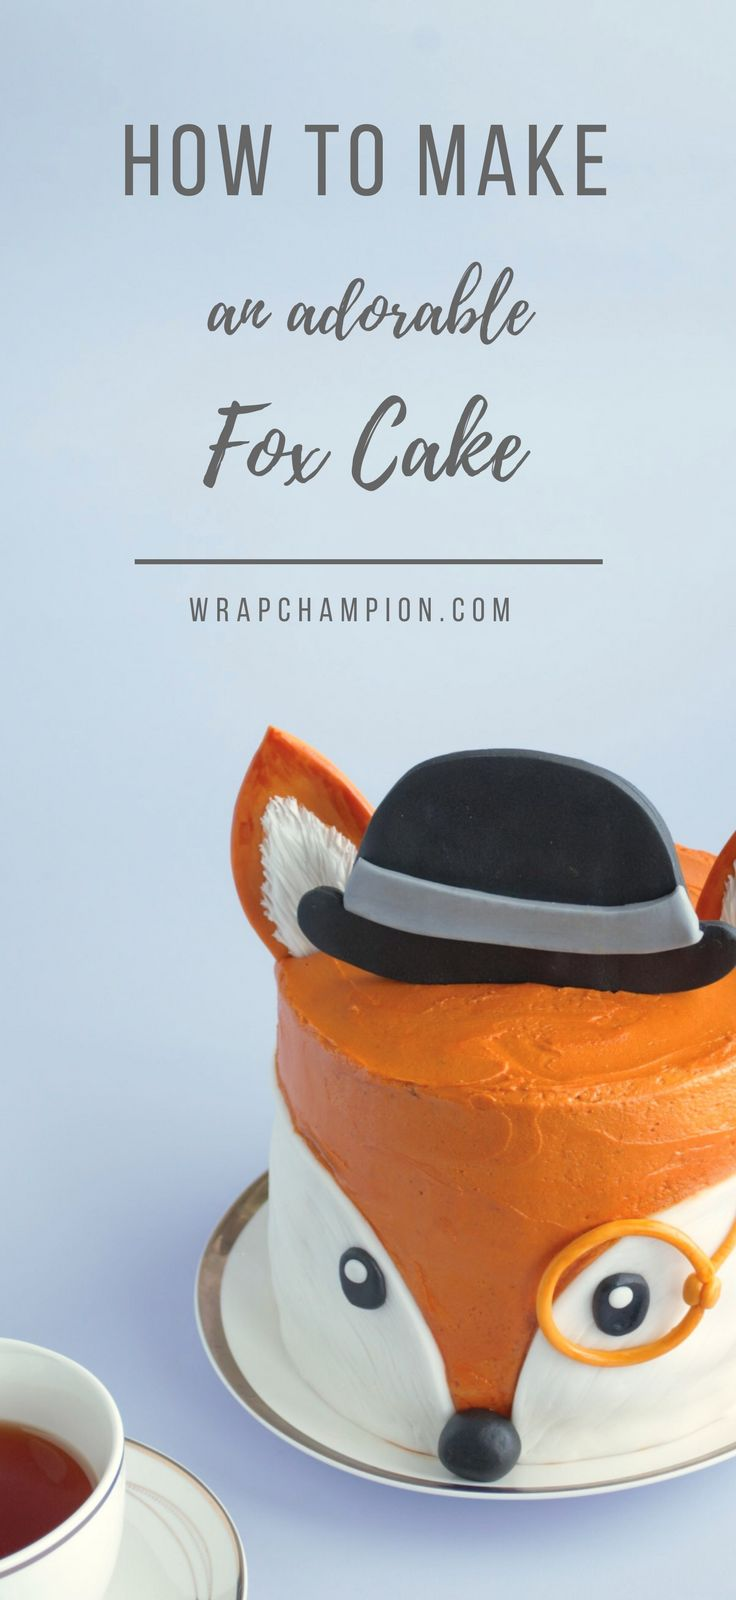 How to make an adorable fox cake with buttercream and fondant. Chocolate cake inside and handy video clips to help with the decorating